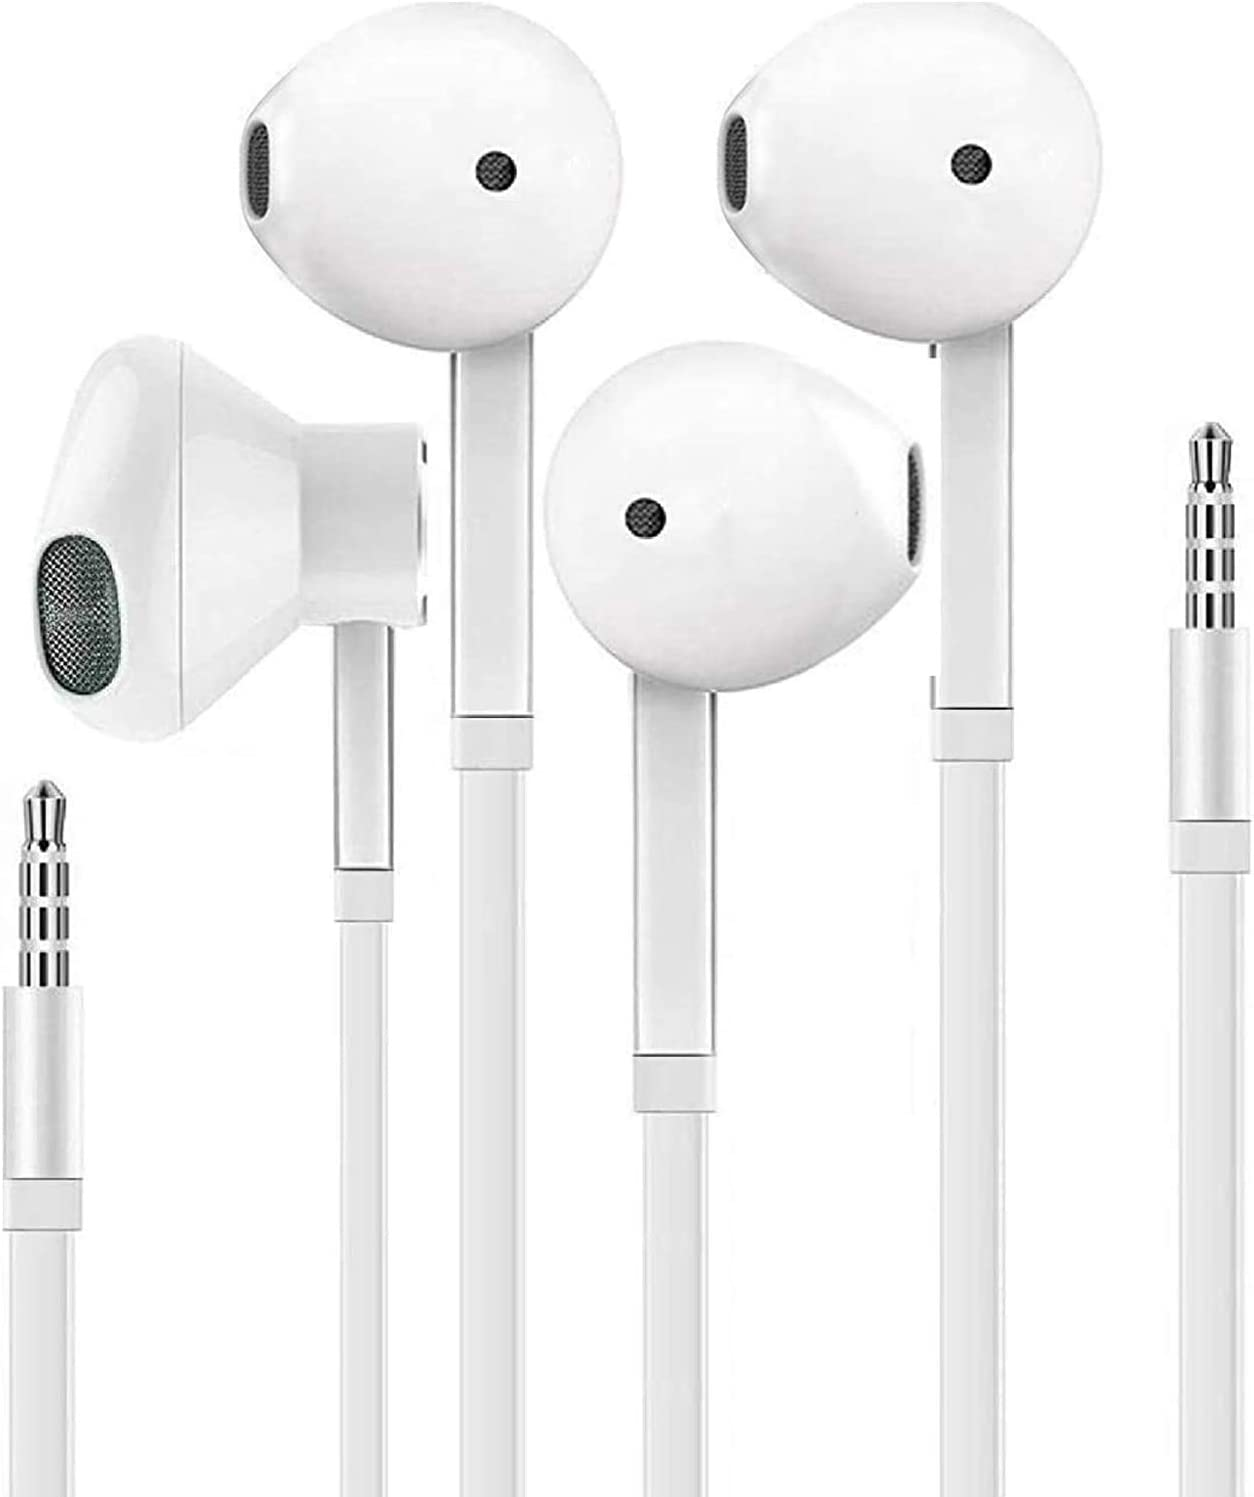 Samsung/Apple Earbuds(2 Pack) Wired 3.5mm White Headset with Microphone, Volume Control, and Call Answer End Button for iPhone,iPad,Samsung,Compter,MP3/4,Android Phone etc[Apple MFi Certified]